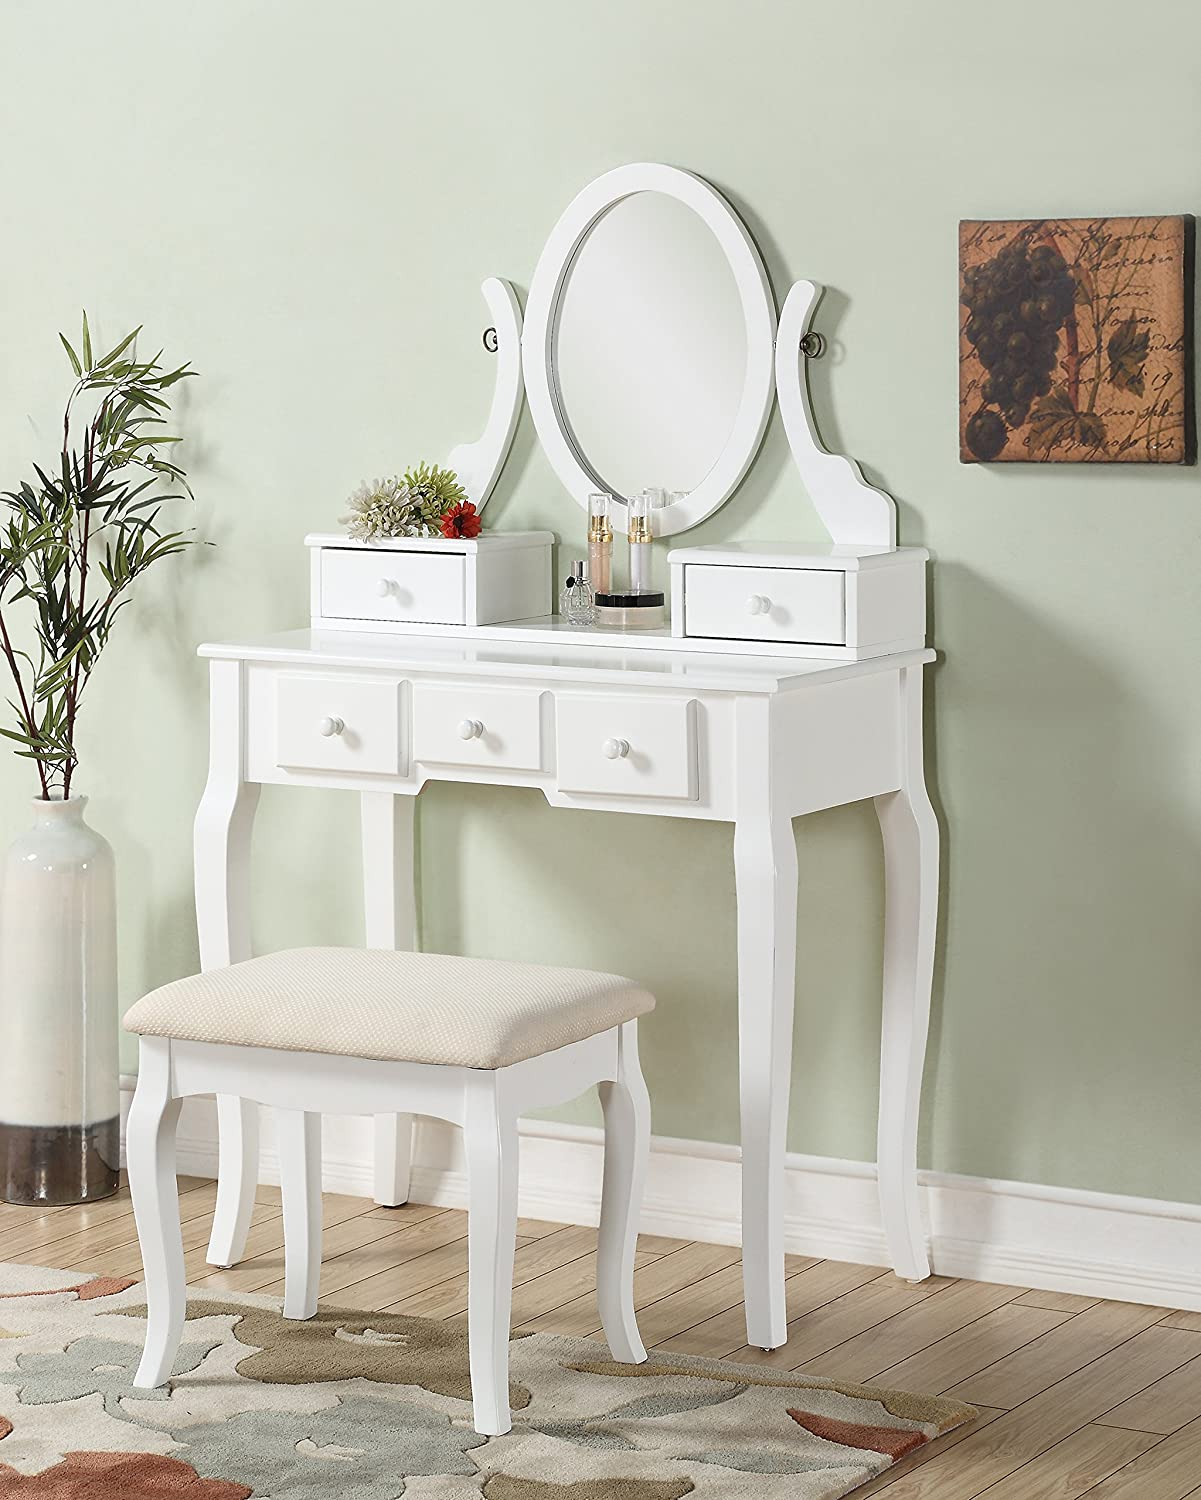 vanities wmsq in inch vanity bathroom white solid hd hm single buy vincent wood wt